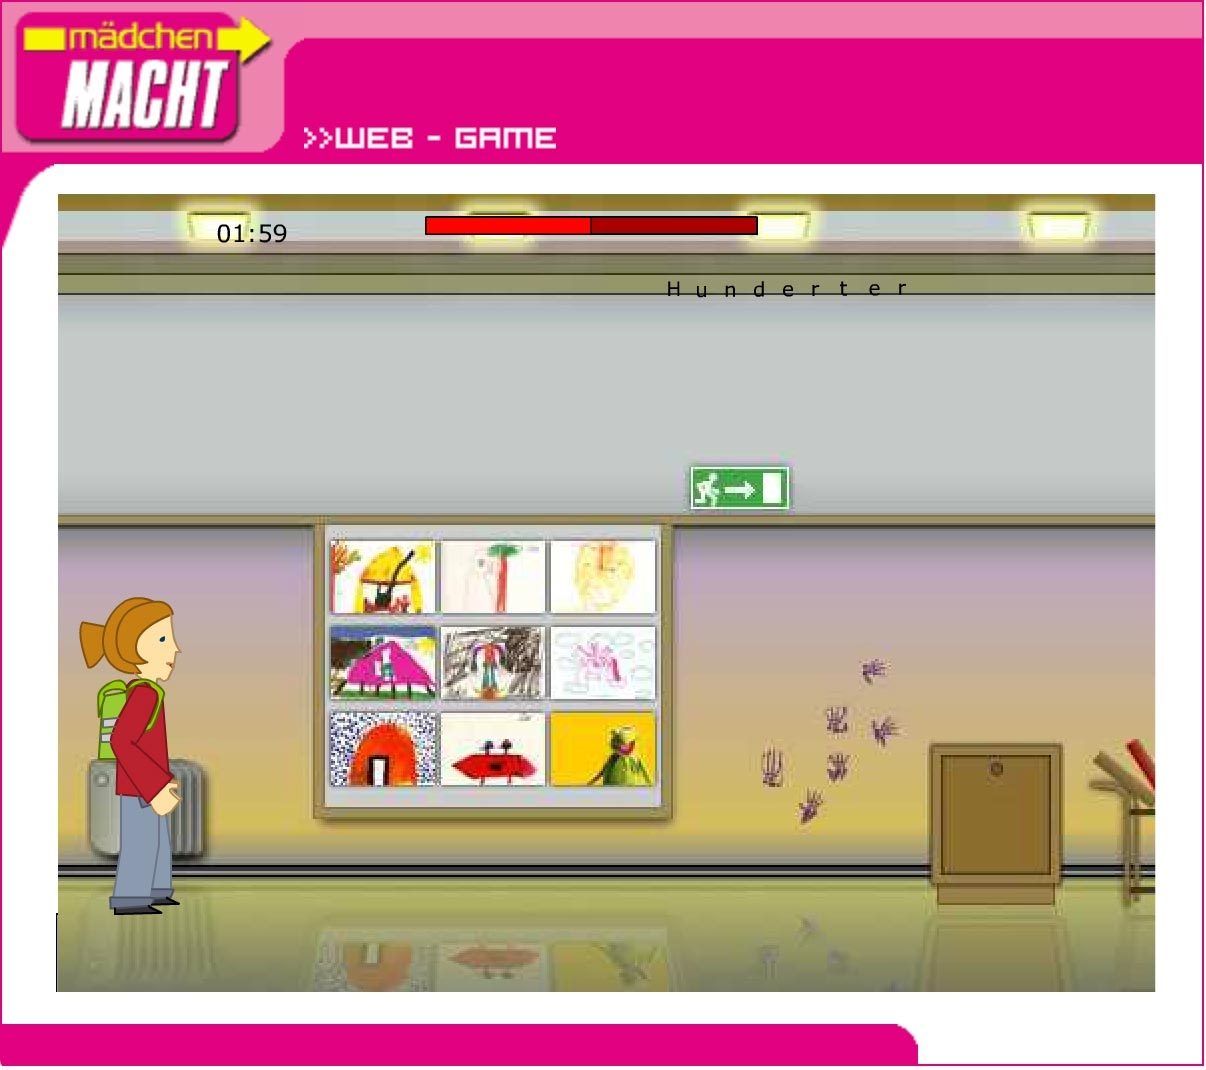 Mädchen macht! | maedchenmacht.at | 2002 | Game (Screen Only 04) © echonet communication